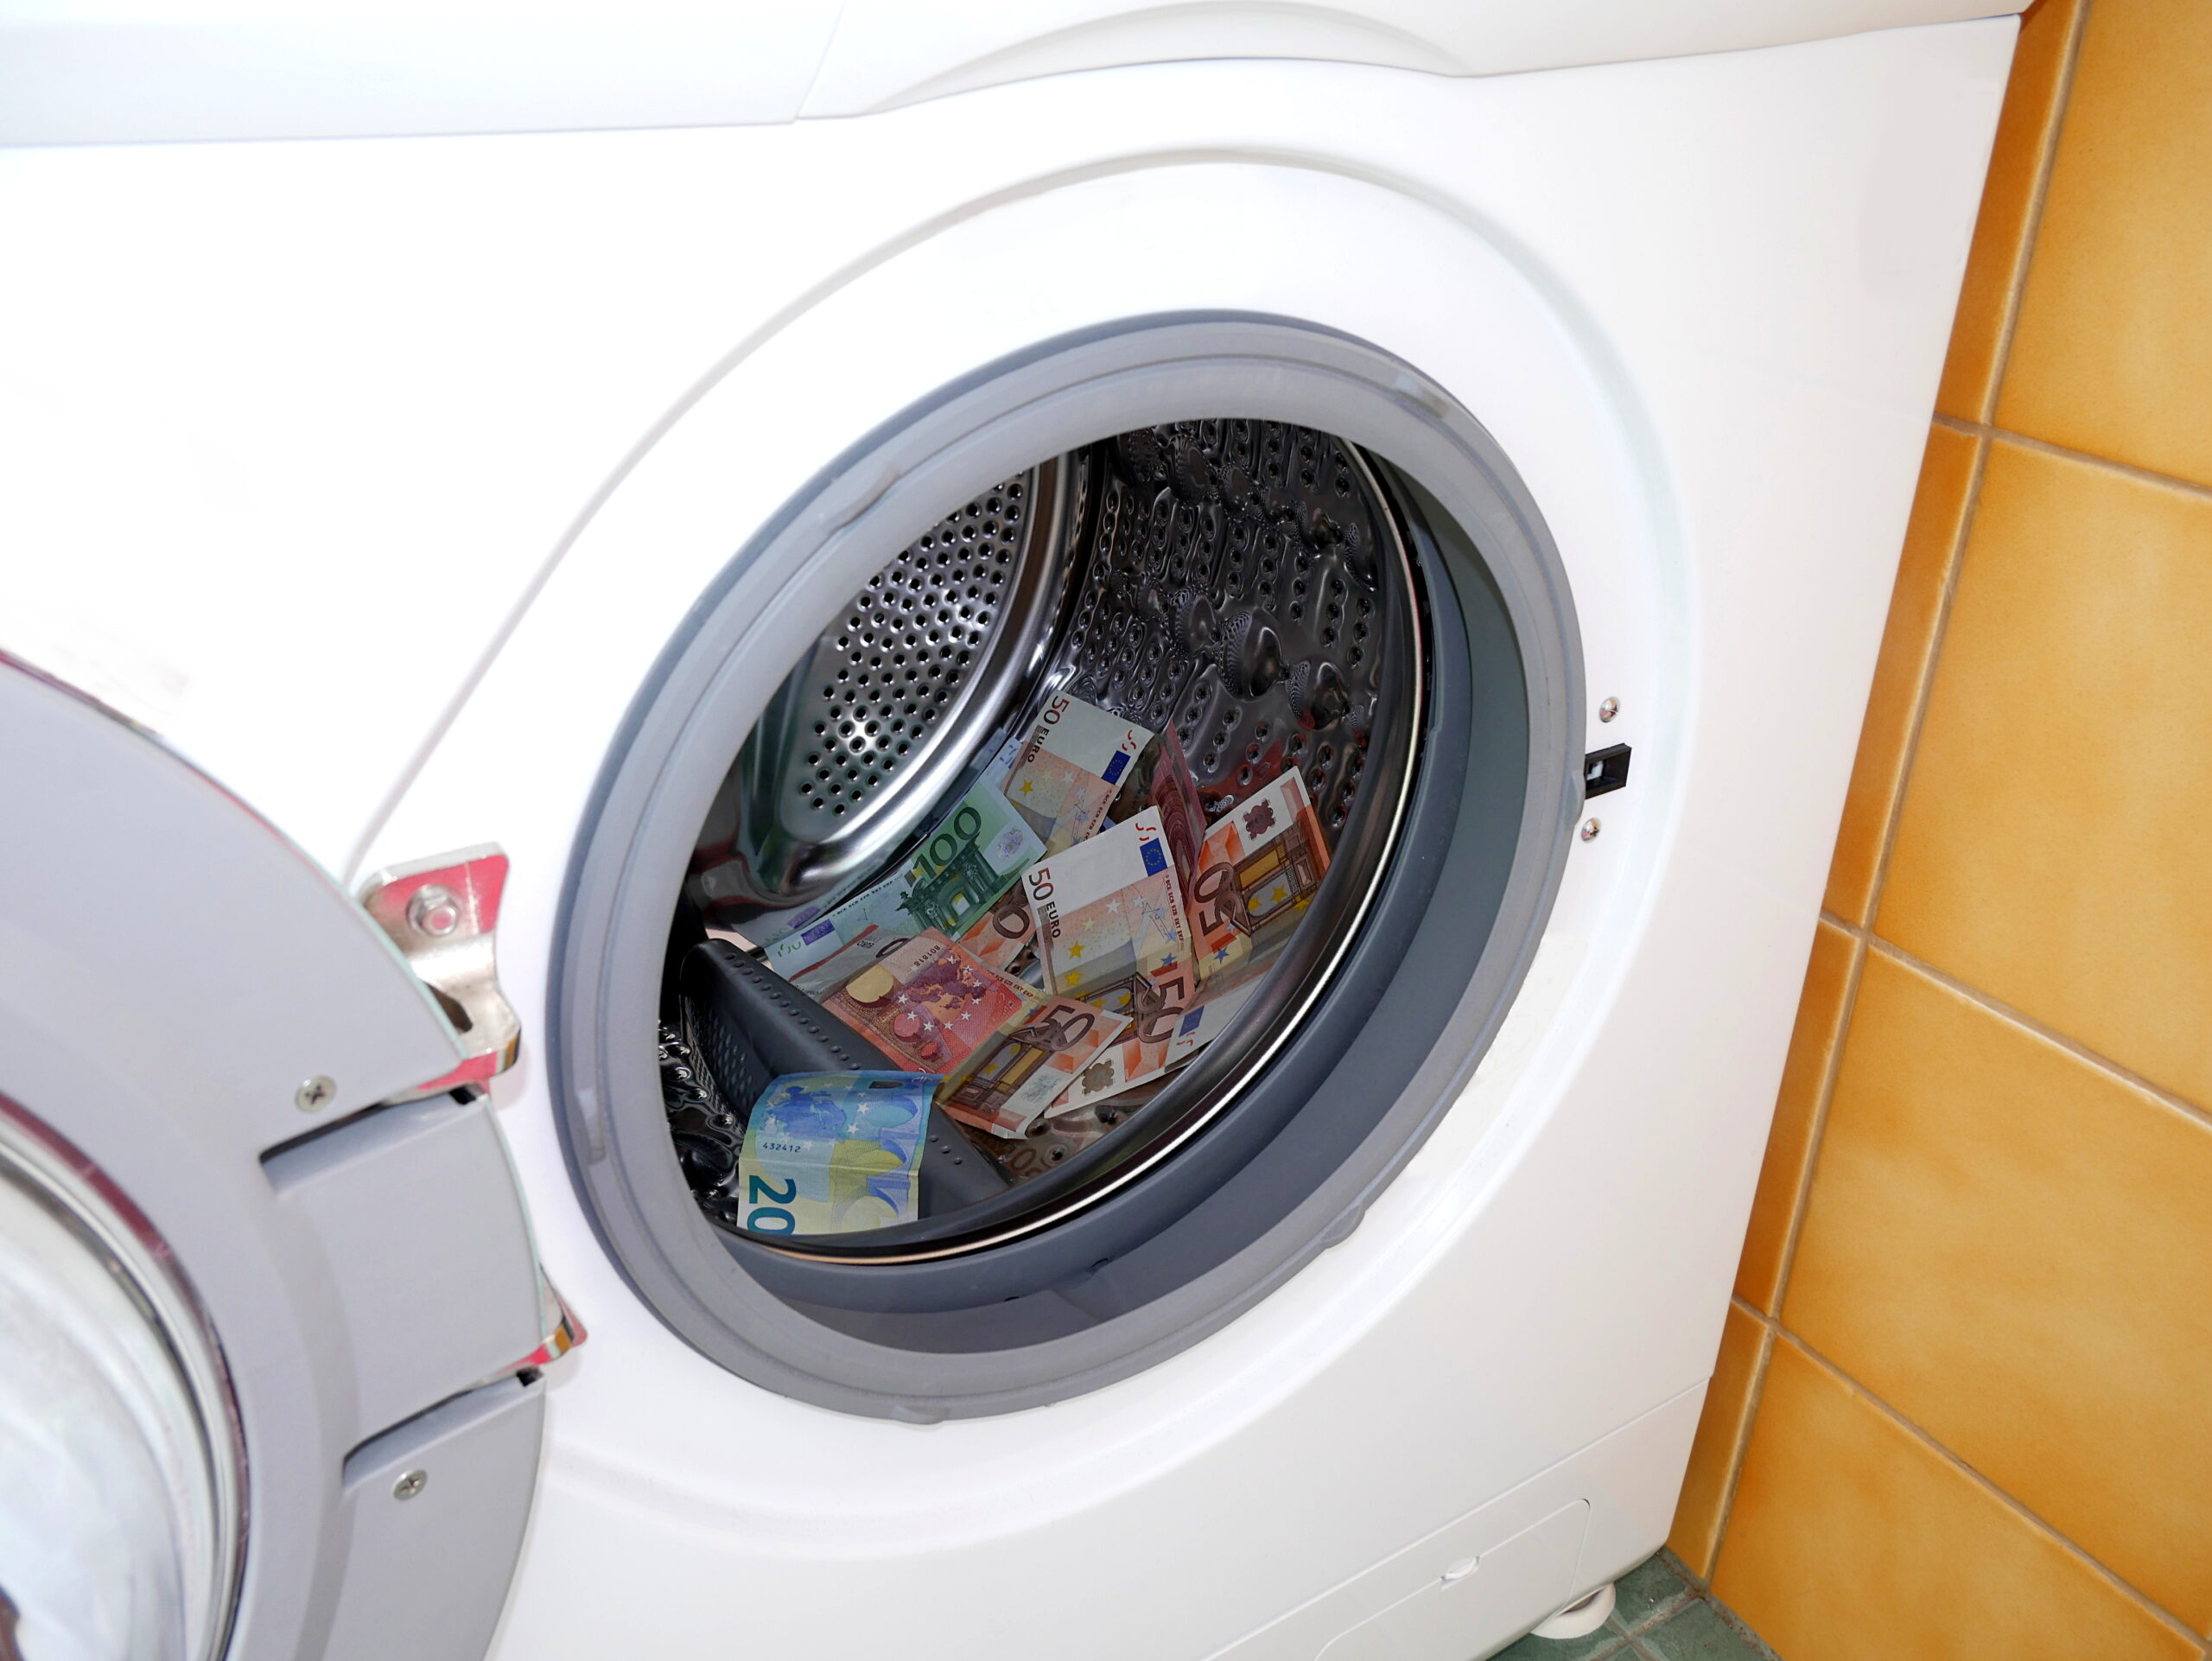 How To Eradicate Odor From Washing Machine?